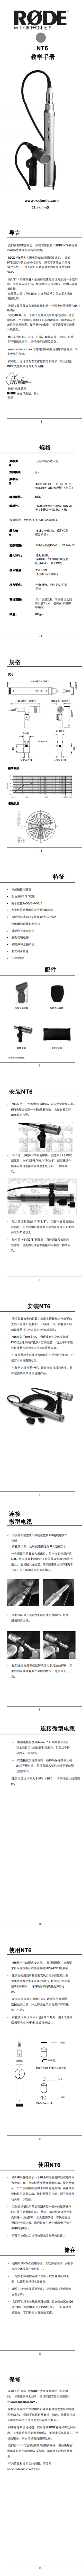 NT6_product_manual_1_12_translate_Chinese_0.png